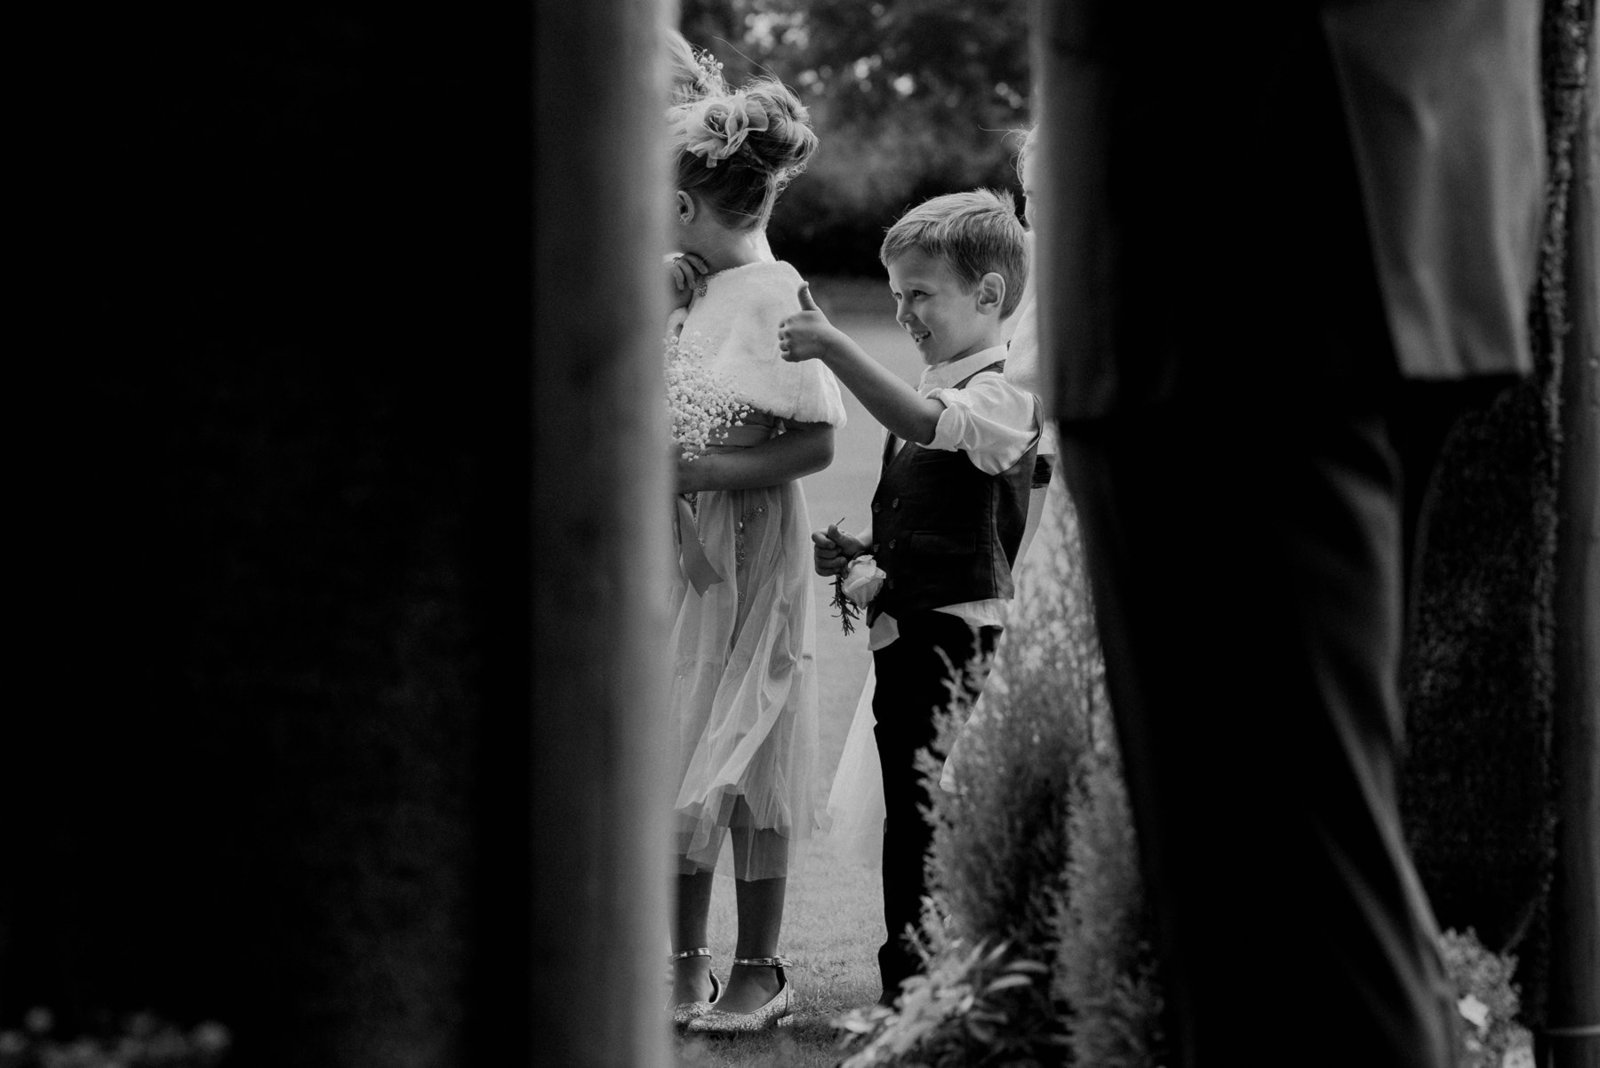 021-paige-boy--outdoor-wedding-ceremony--modern-photographer-yorkshire